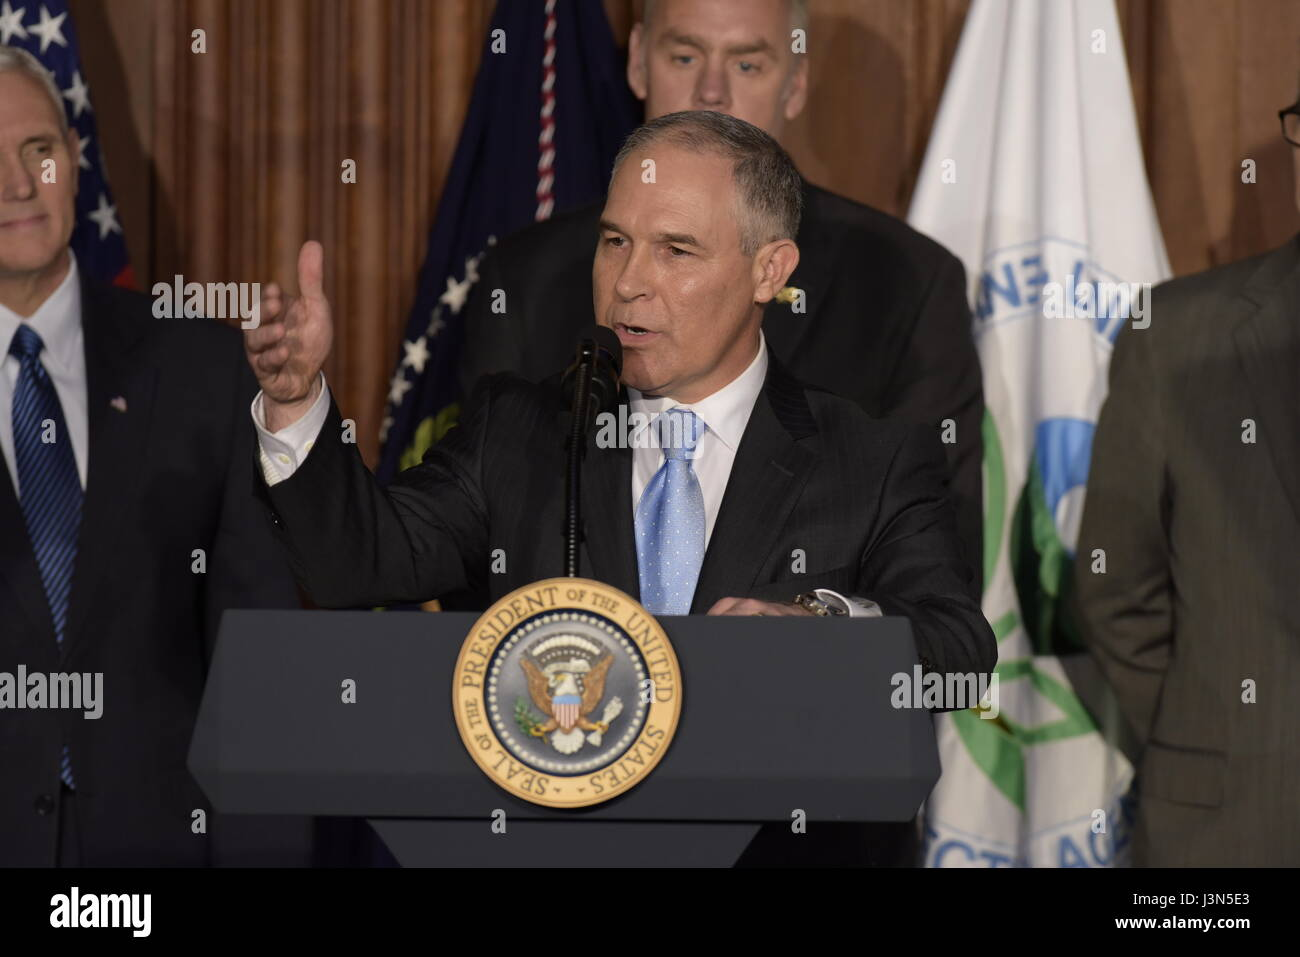 U.S. EPA Administrator Scott Pruitt delivers remarks at a signing ceremony for a series of anti-environmental executive - Stock Image